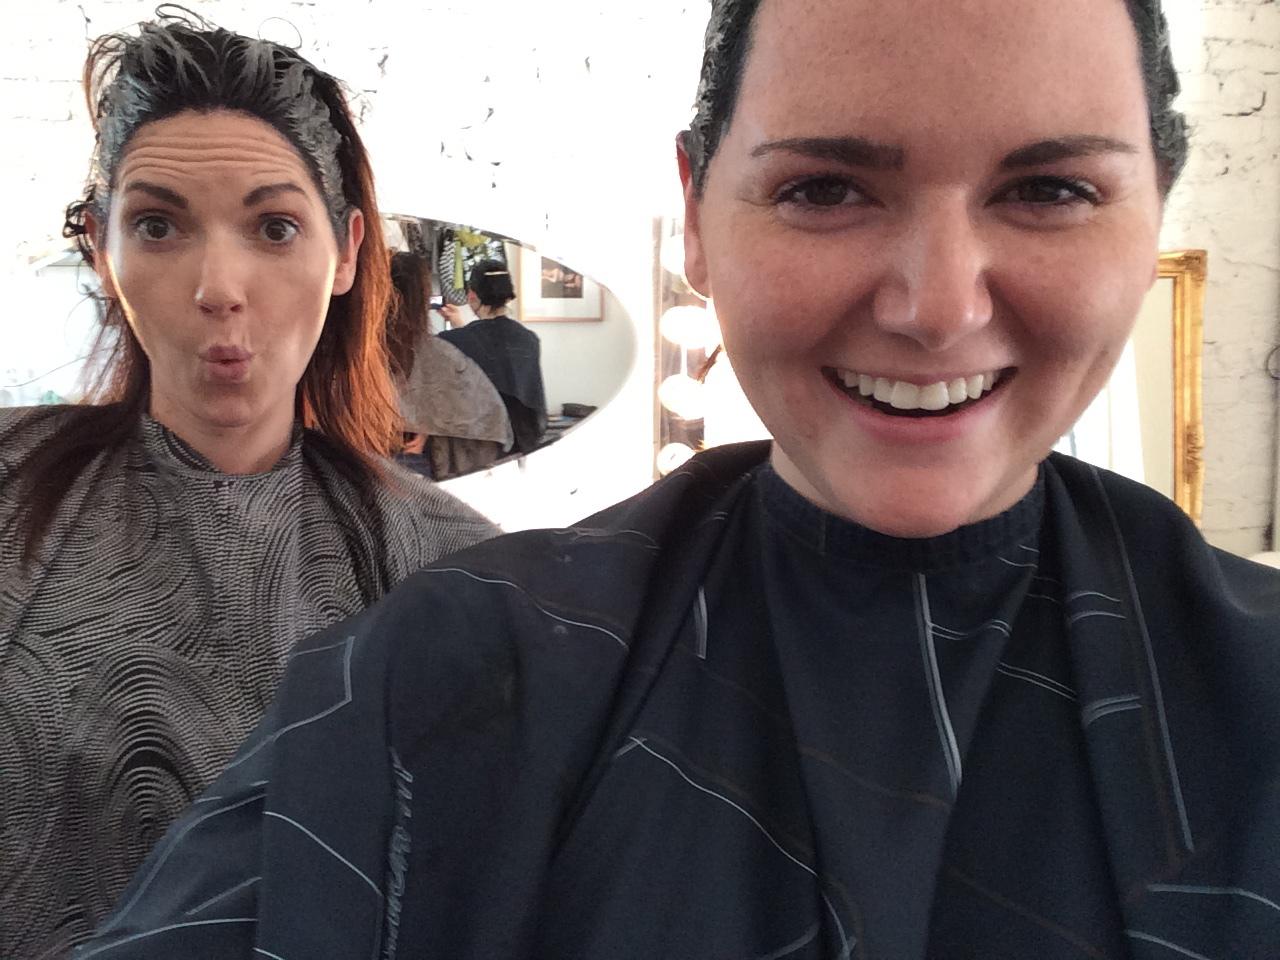 Sisters who do hair together….look great. August 29, 2015543